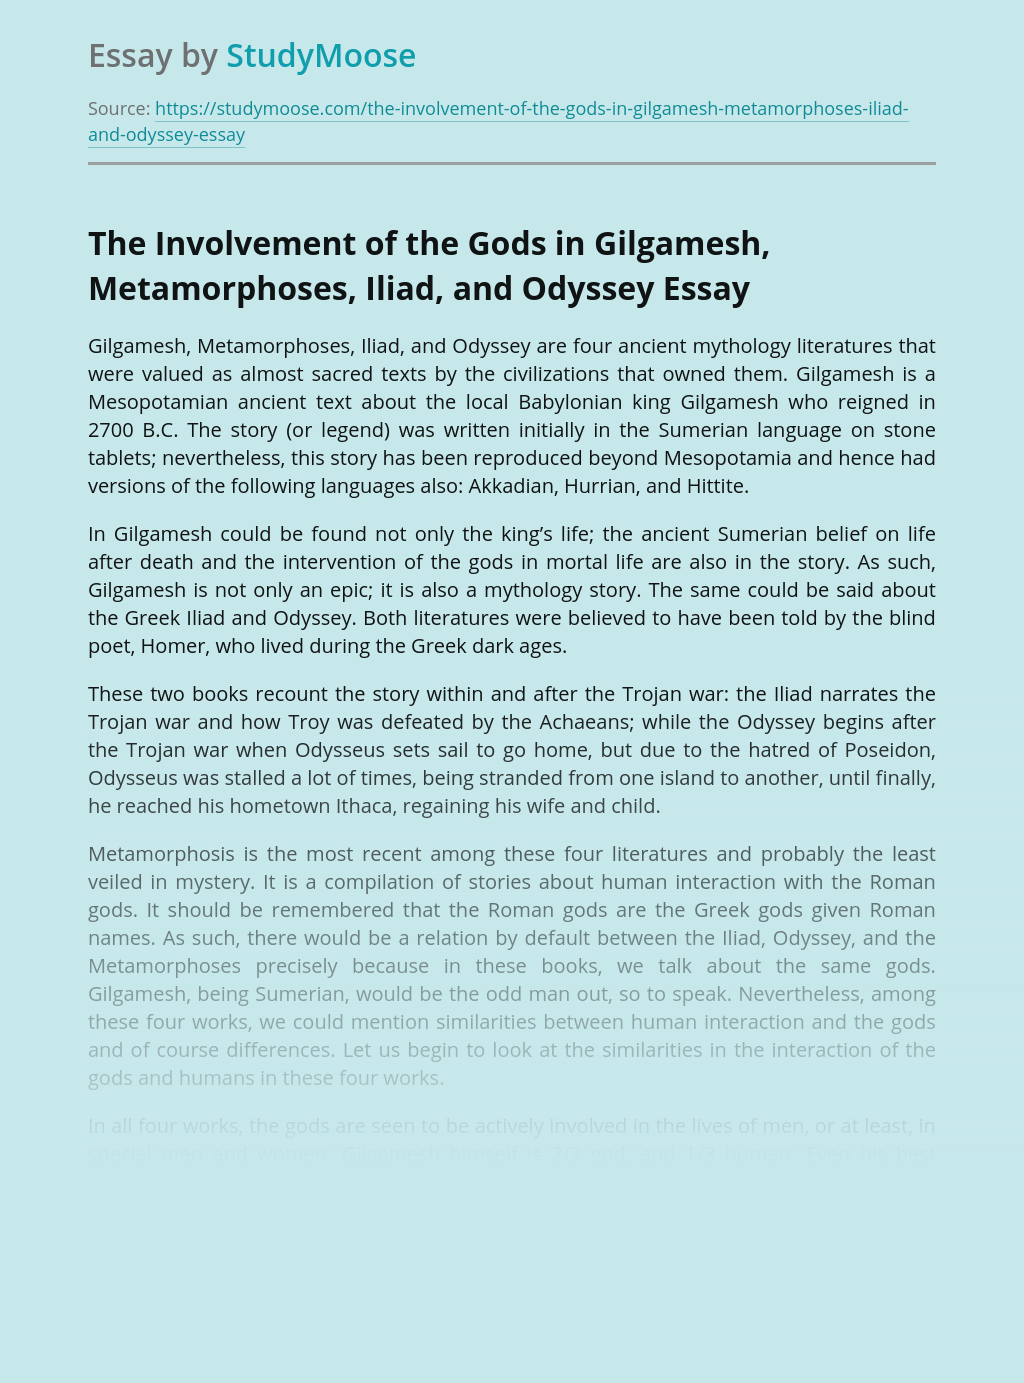 The Involvement of the Gods in Gilgamesh, Metamorphoses, Iliad, and Odyssey